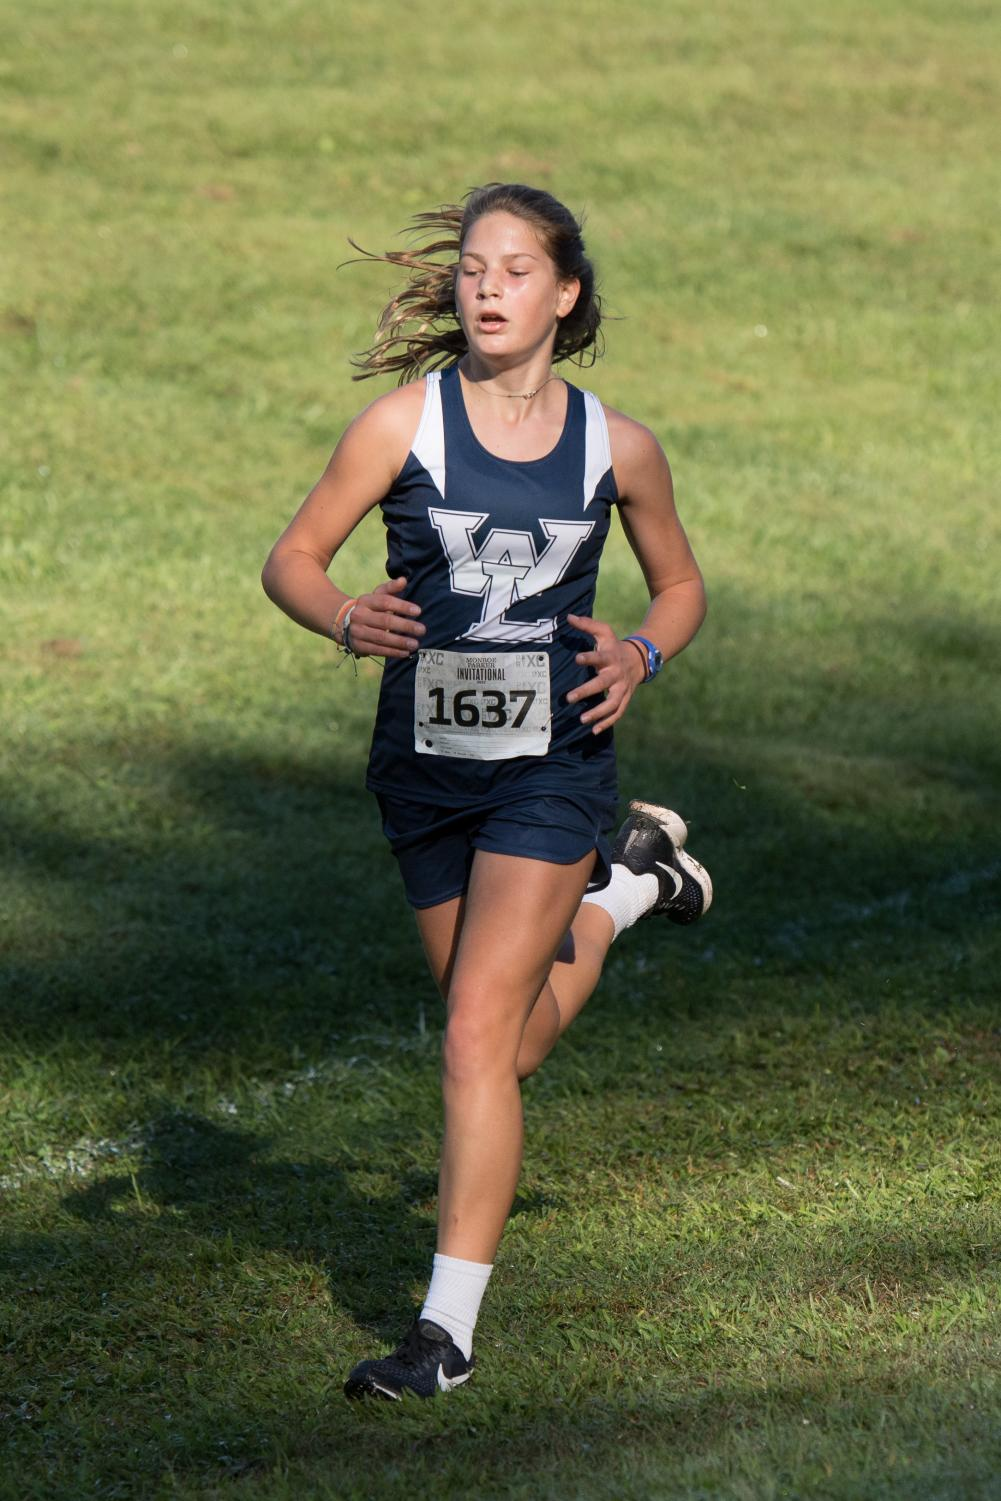 Freshman Anna Erskine participating in Girls' Cross Country